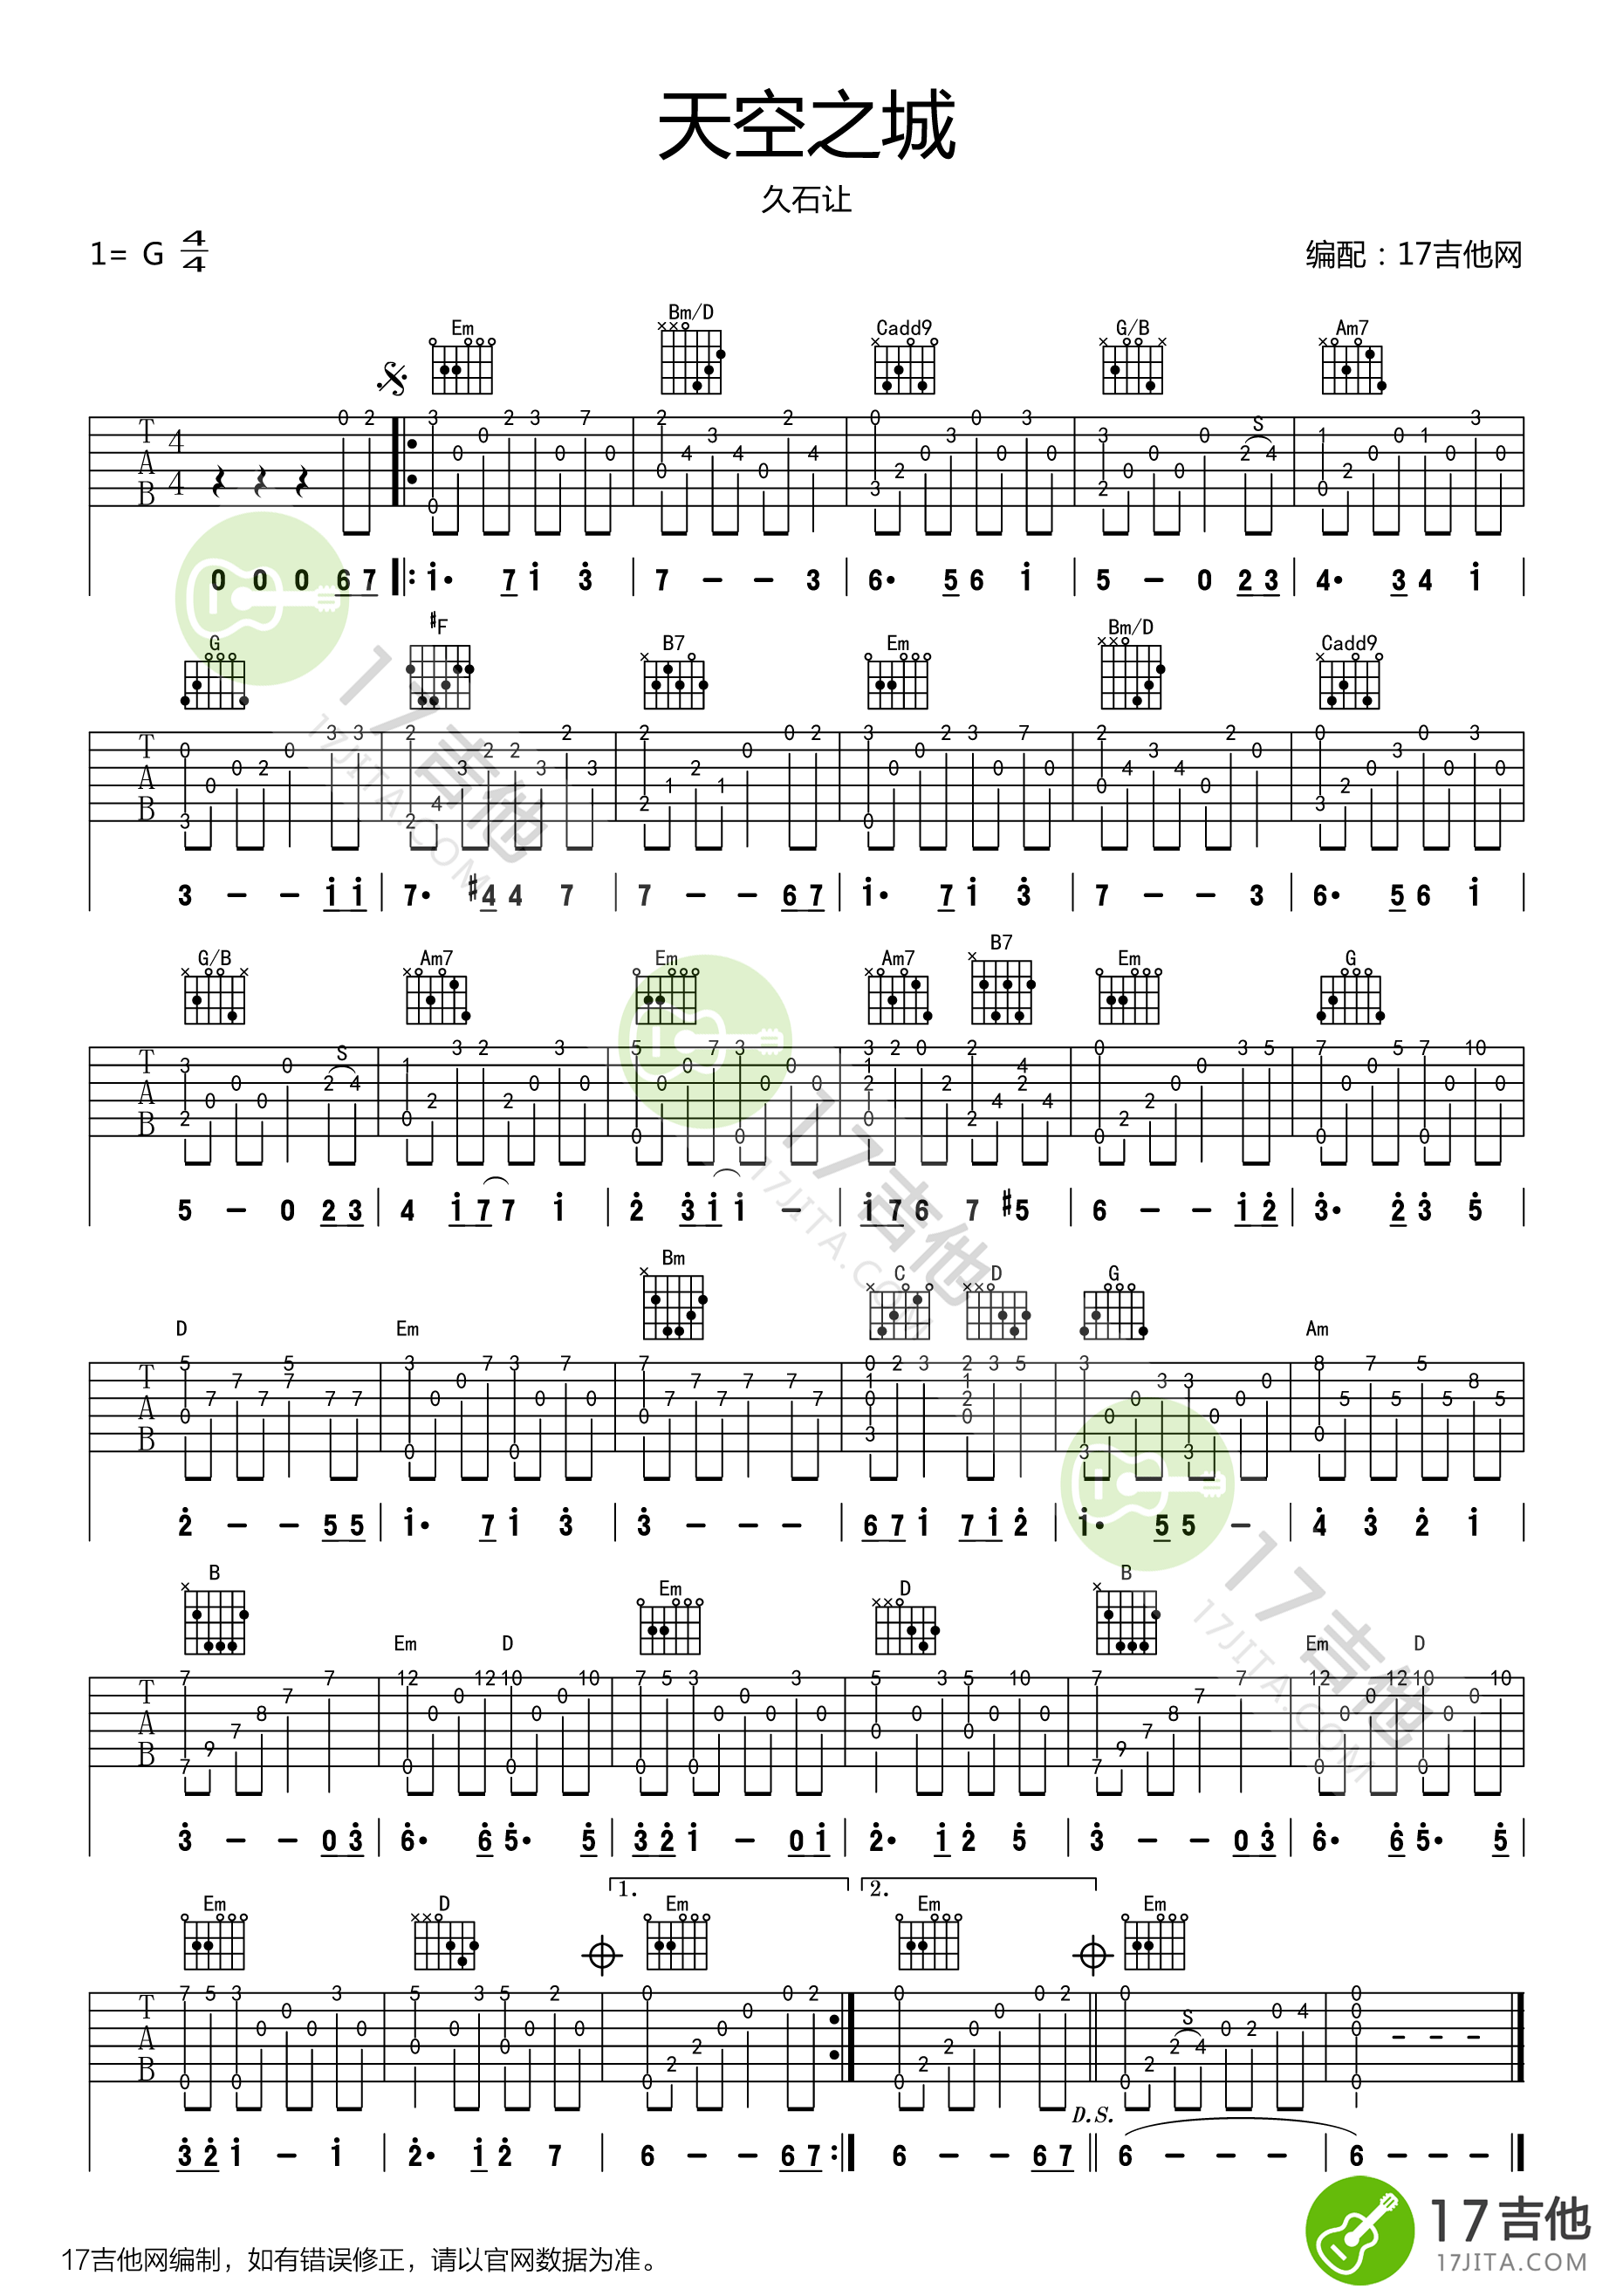 Tabs and chords for guitar